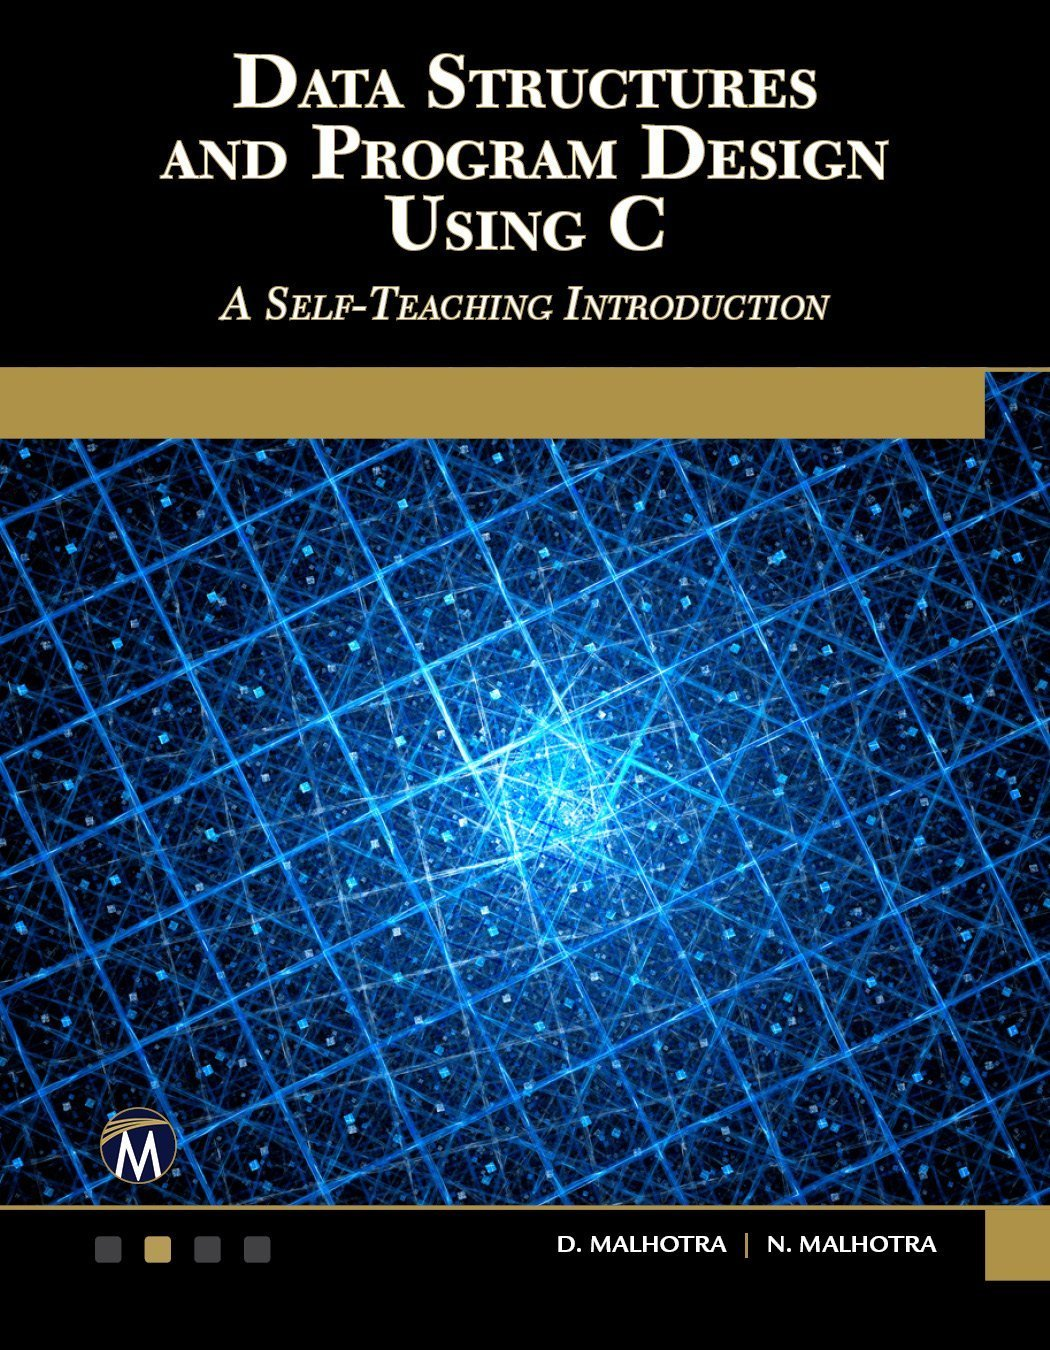 Download Data Structures and Program Design Using C: A Self-Teaching